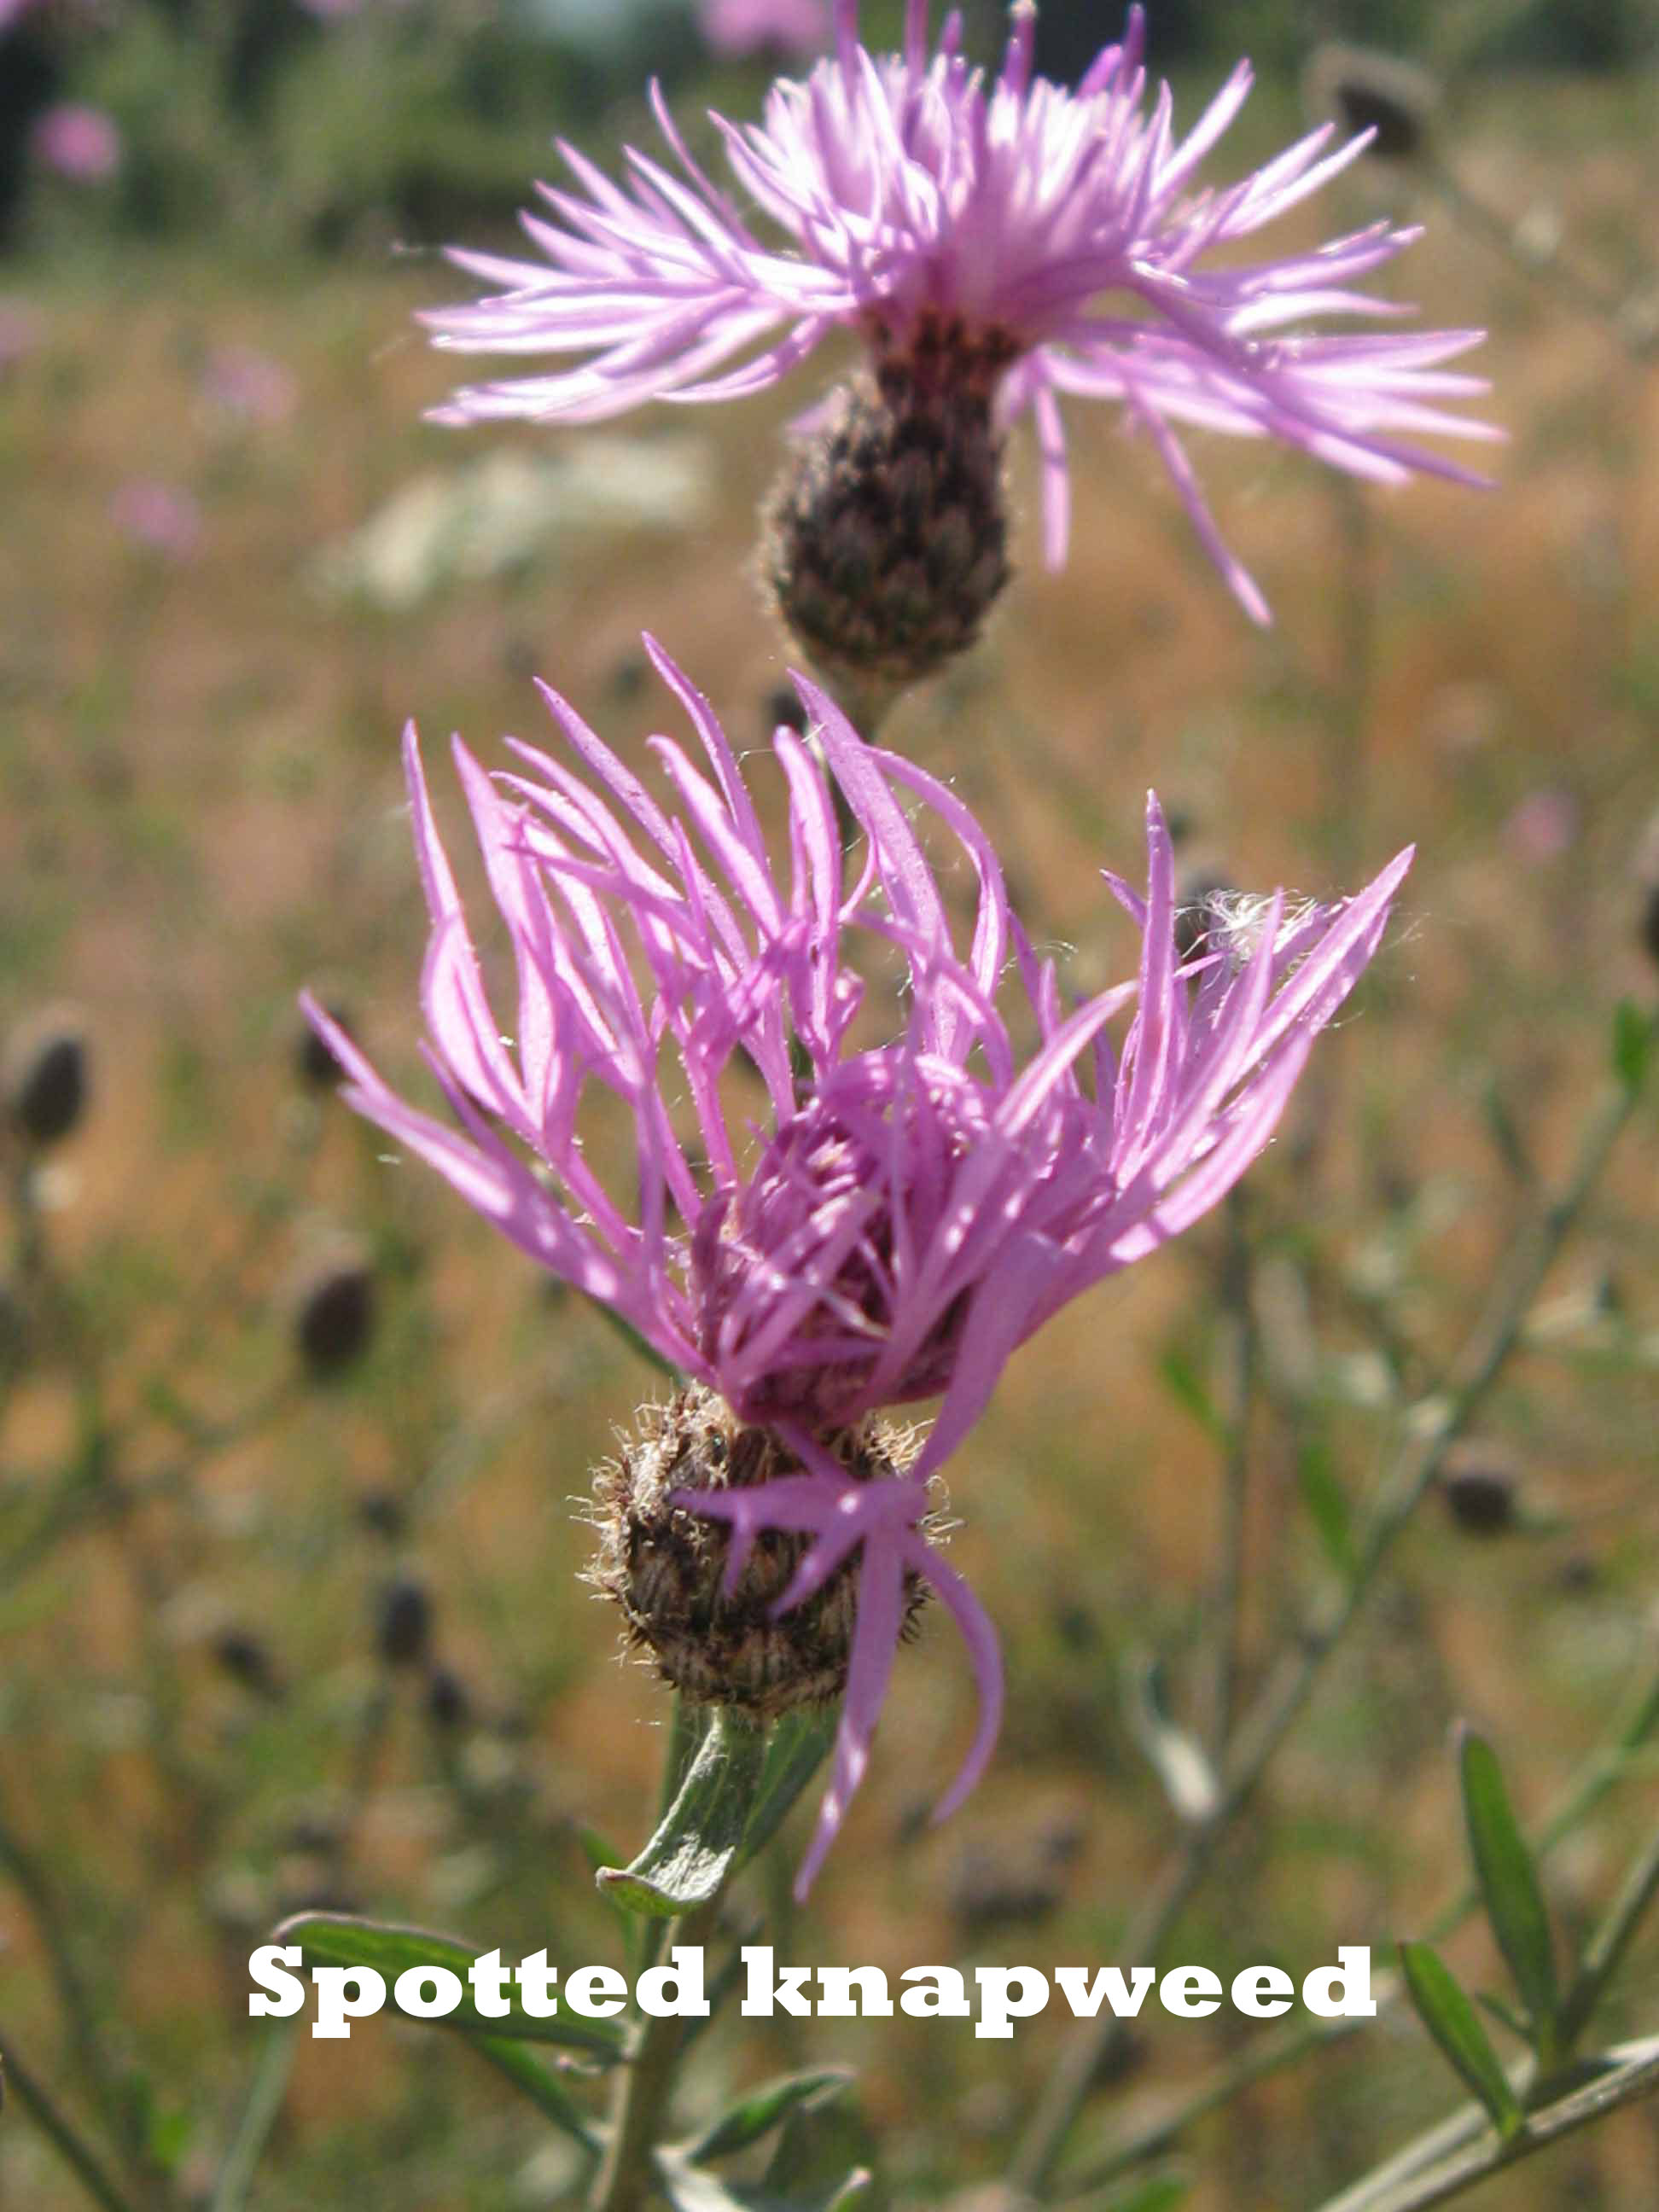 Spotted knapweed image